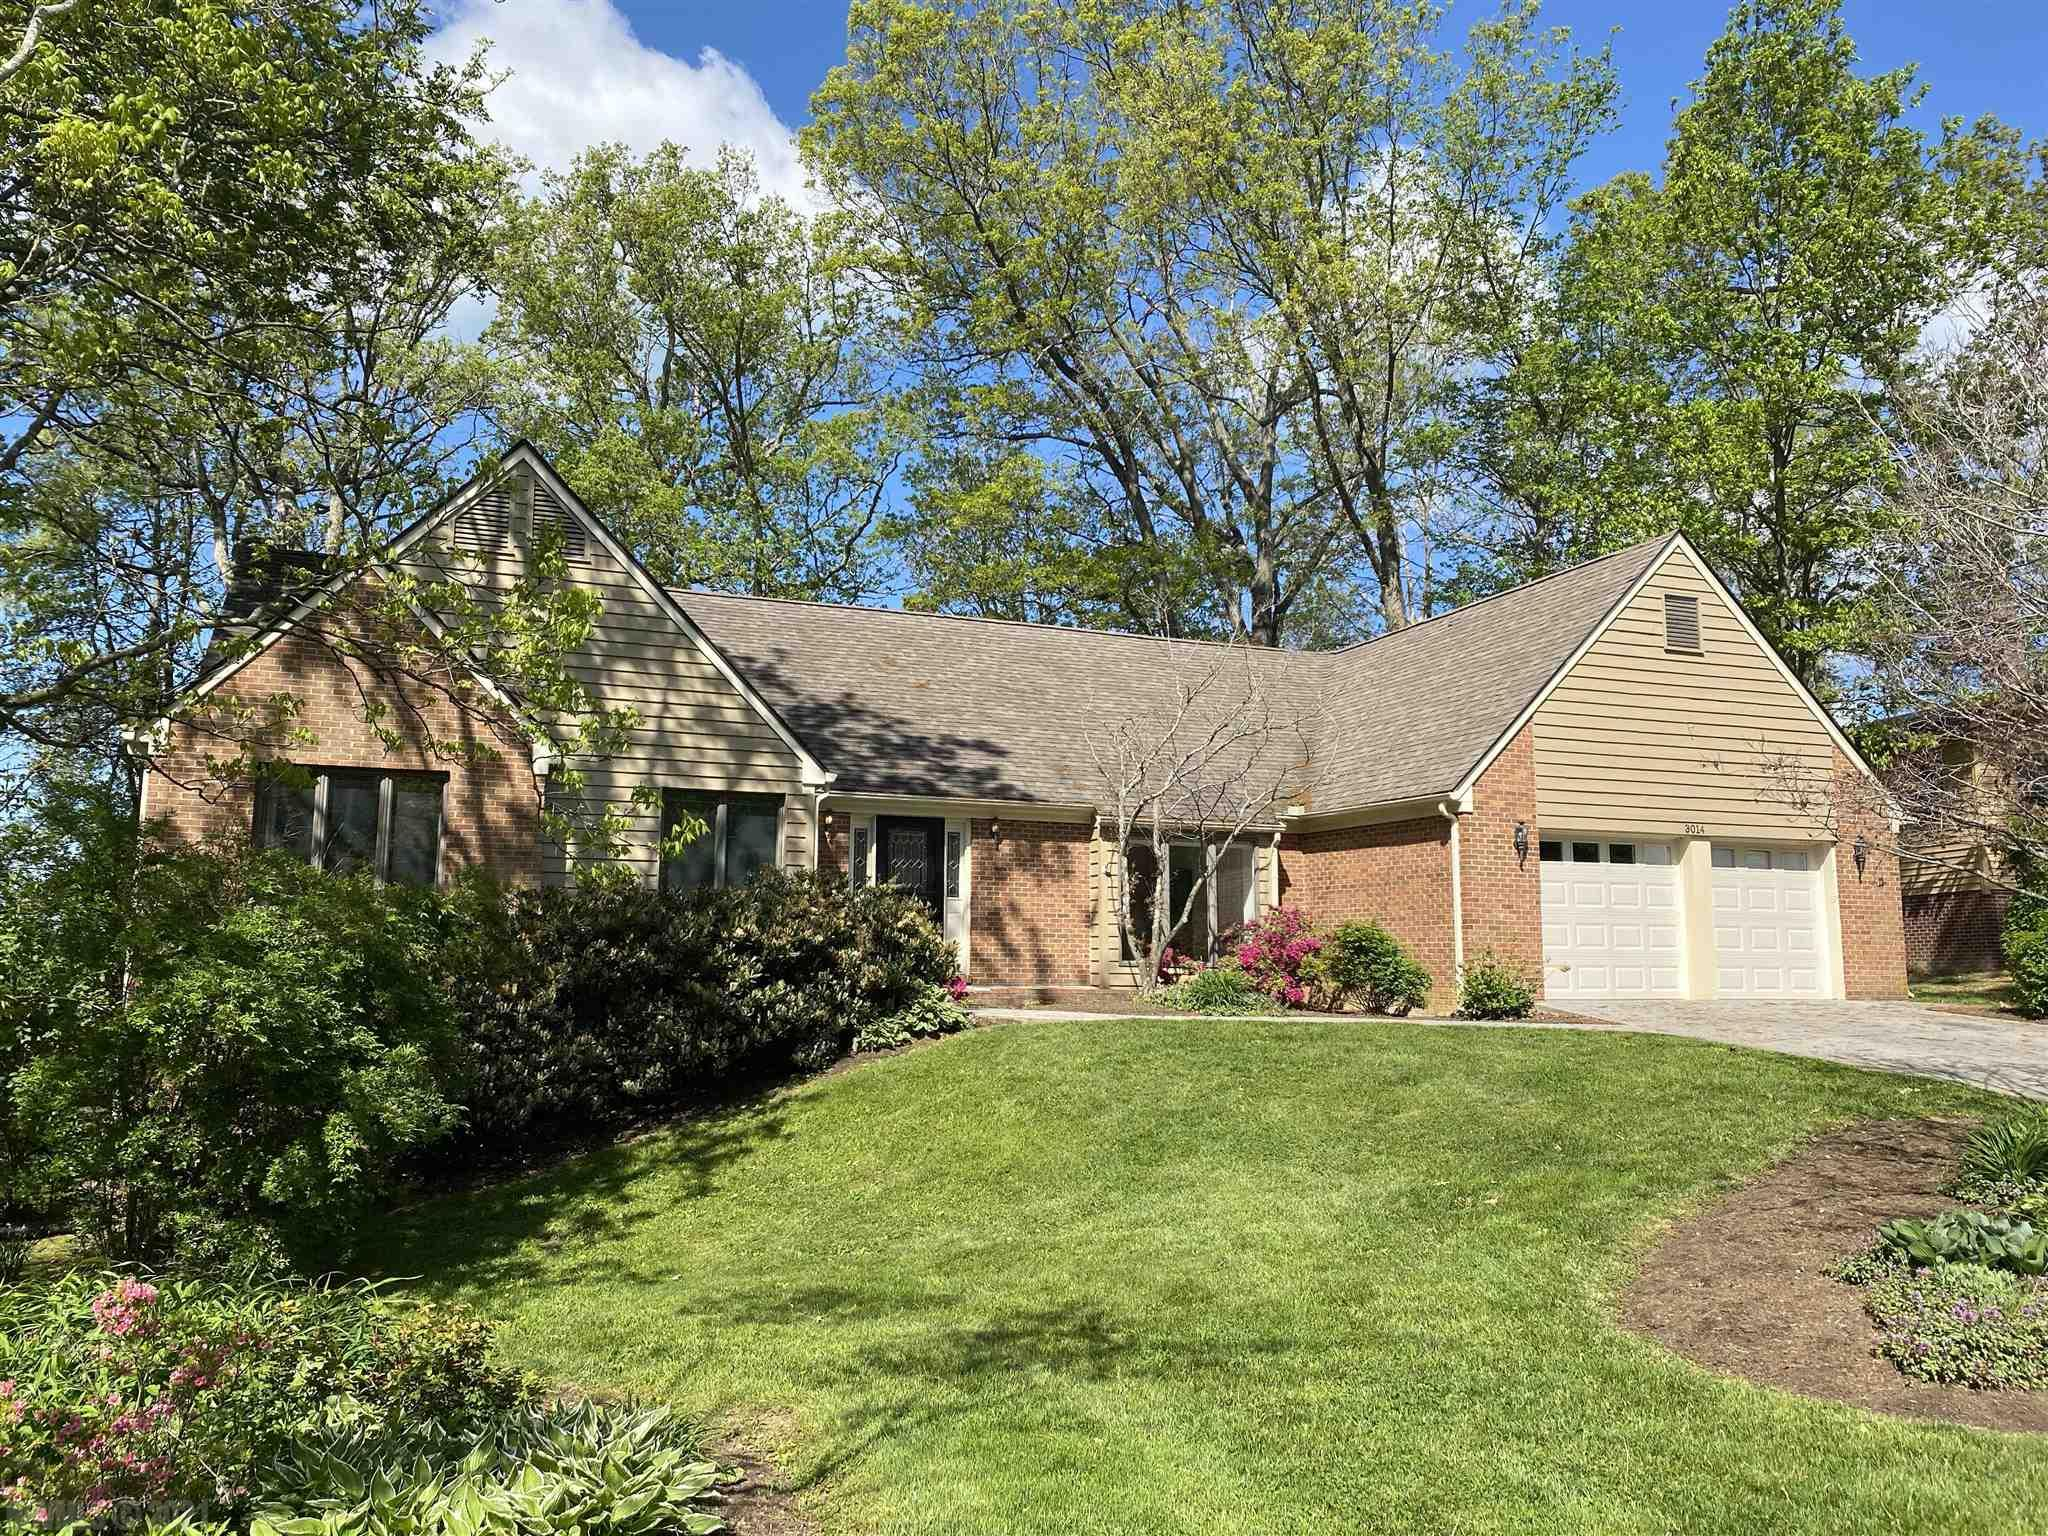 Don't miss this lovely large one level Stroubles Mill home on a full walk-out basement with a large master suite.  Located in a quiet cul-de-sac, next to a neighborhood playground, backing up to a farm, with an easy commute to BHS, BMS, Kipps and VT, the location of this home is amazing.  A large vaulted master suite addition has been added to this home with a sauna.  A vaulted living room and spacious bright kitchen are a few of the special features on the main level. Hardwood floors, built ins, Quartz tops, gas range, wall oven, a newer roof, two hot water heaters, gas heating, wood stove, sauna, & masonry fireplace are other features you will enjoy.  The double car garage has a golf simulator installed in it, along with a ductless split HVAC system.  The lower level has a kitchenette, office, family room and game room, library, plus storage.  Outside is a paved basketball court, a HUGE deck, and beautiful landscaping.  Ready to move right into, please tour this special home today!